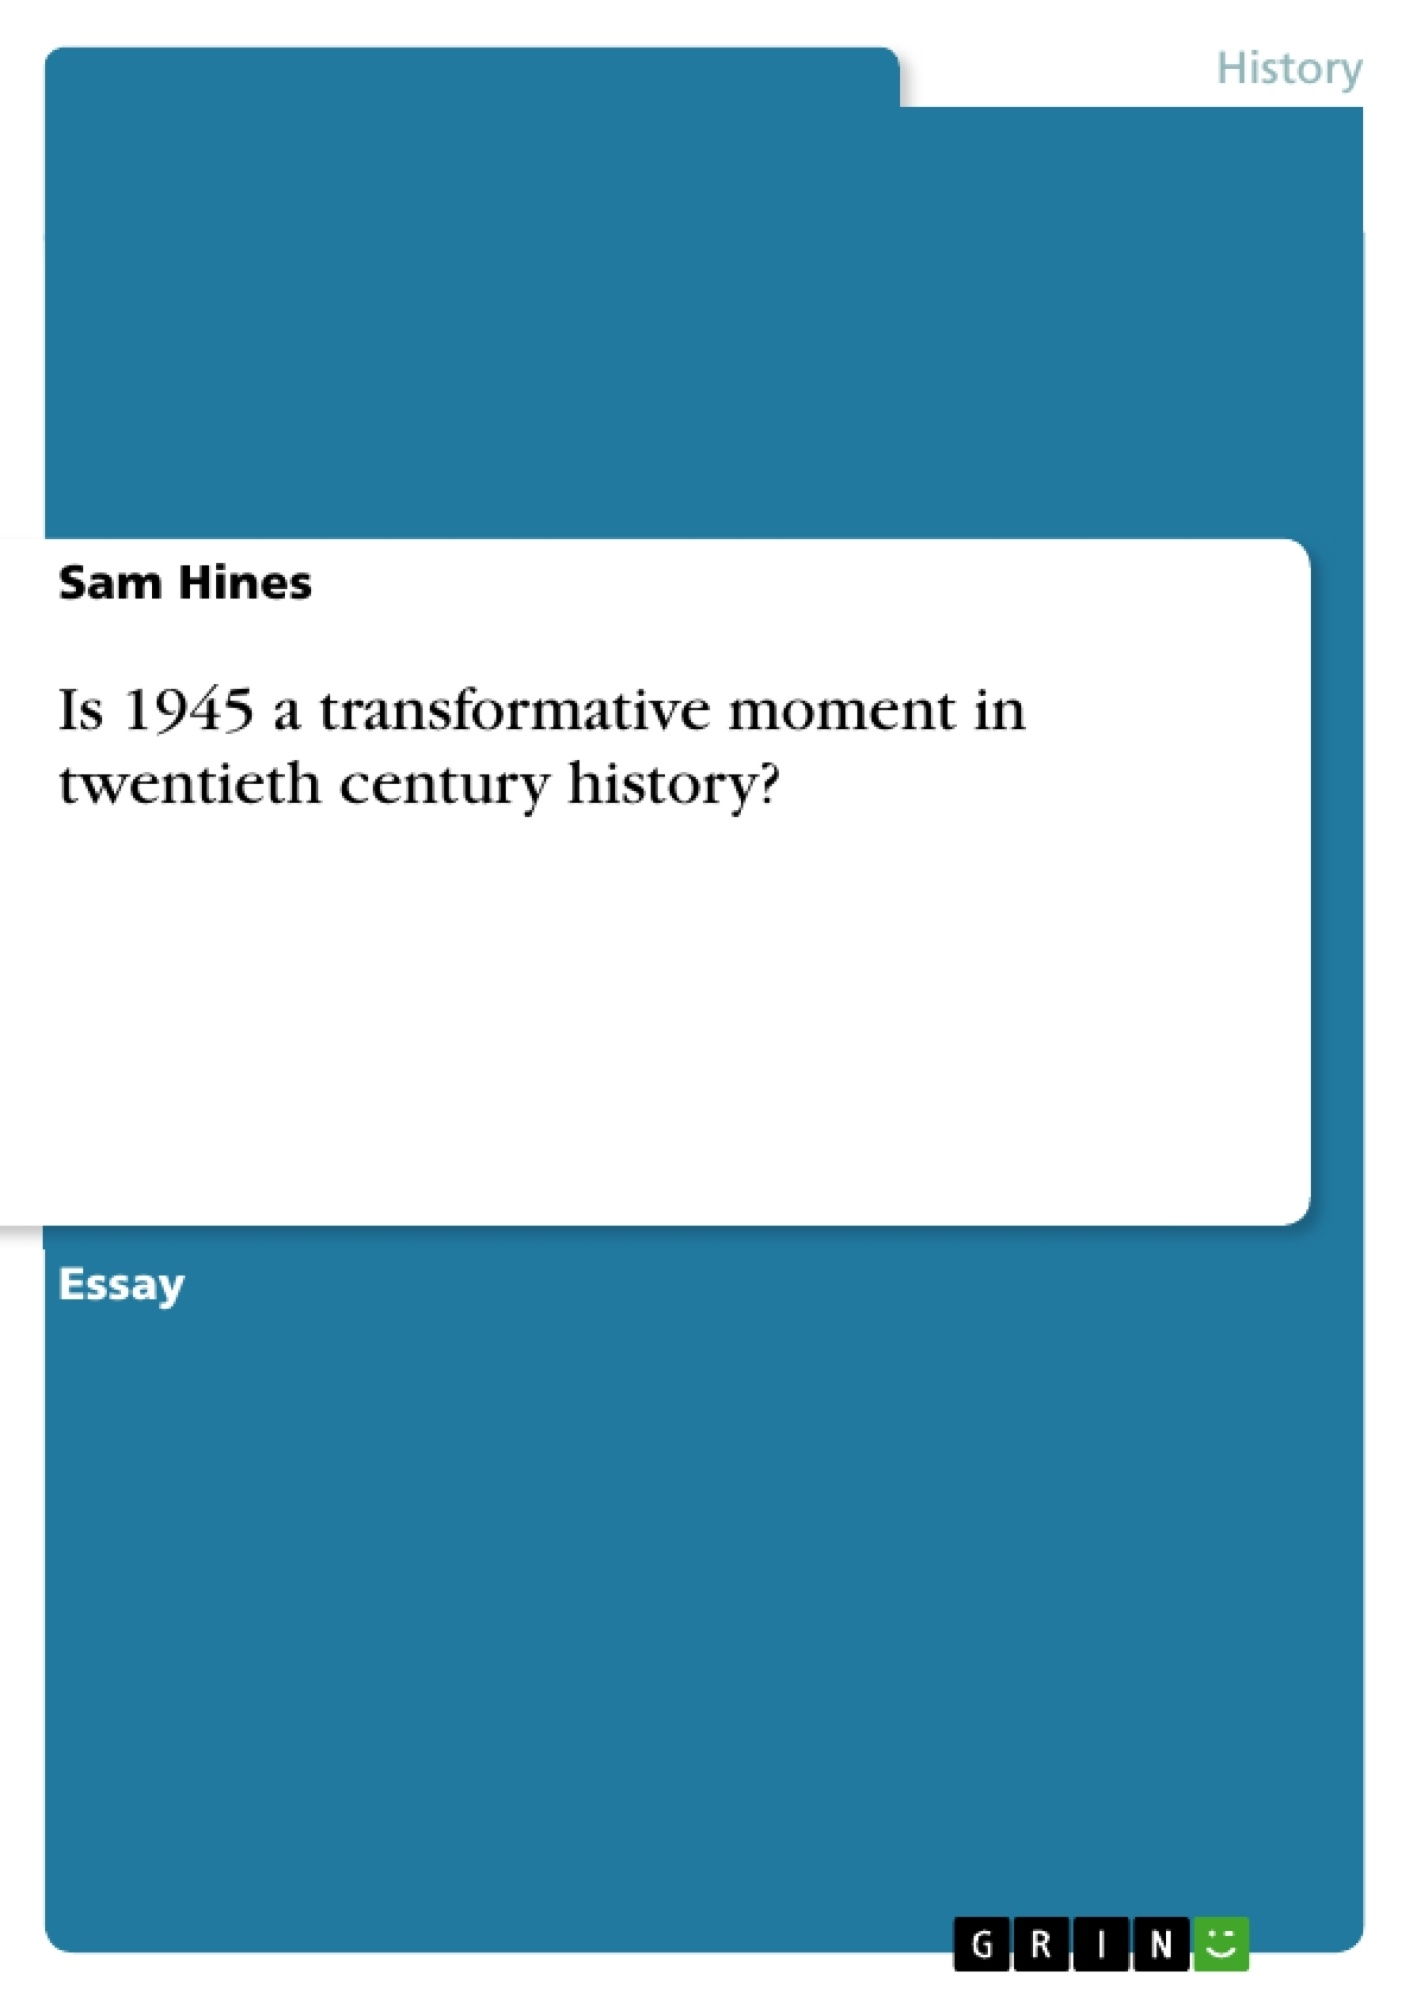 Title: Is 1945 a transformative moment in twentieth century history?